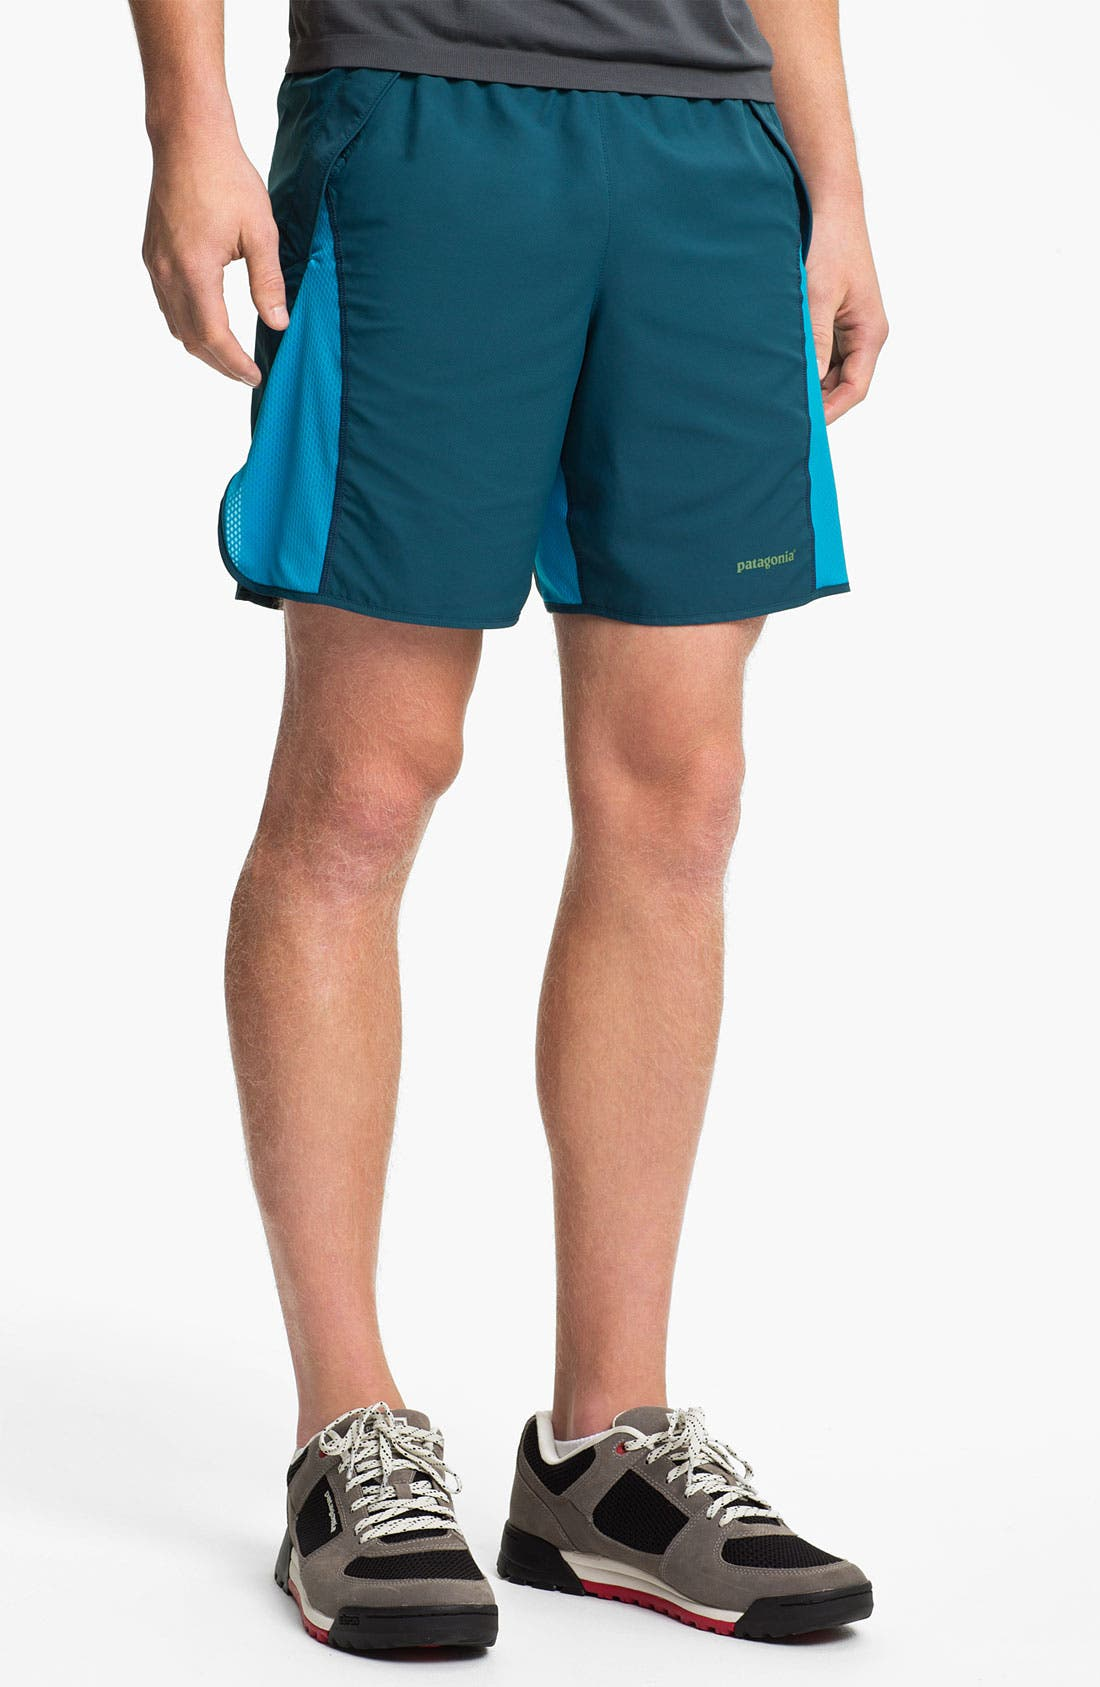 Alternate Image 1 Selected - Patagonia 'Trail Chaser' Shorts